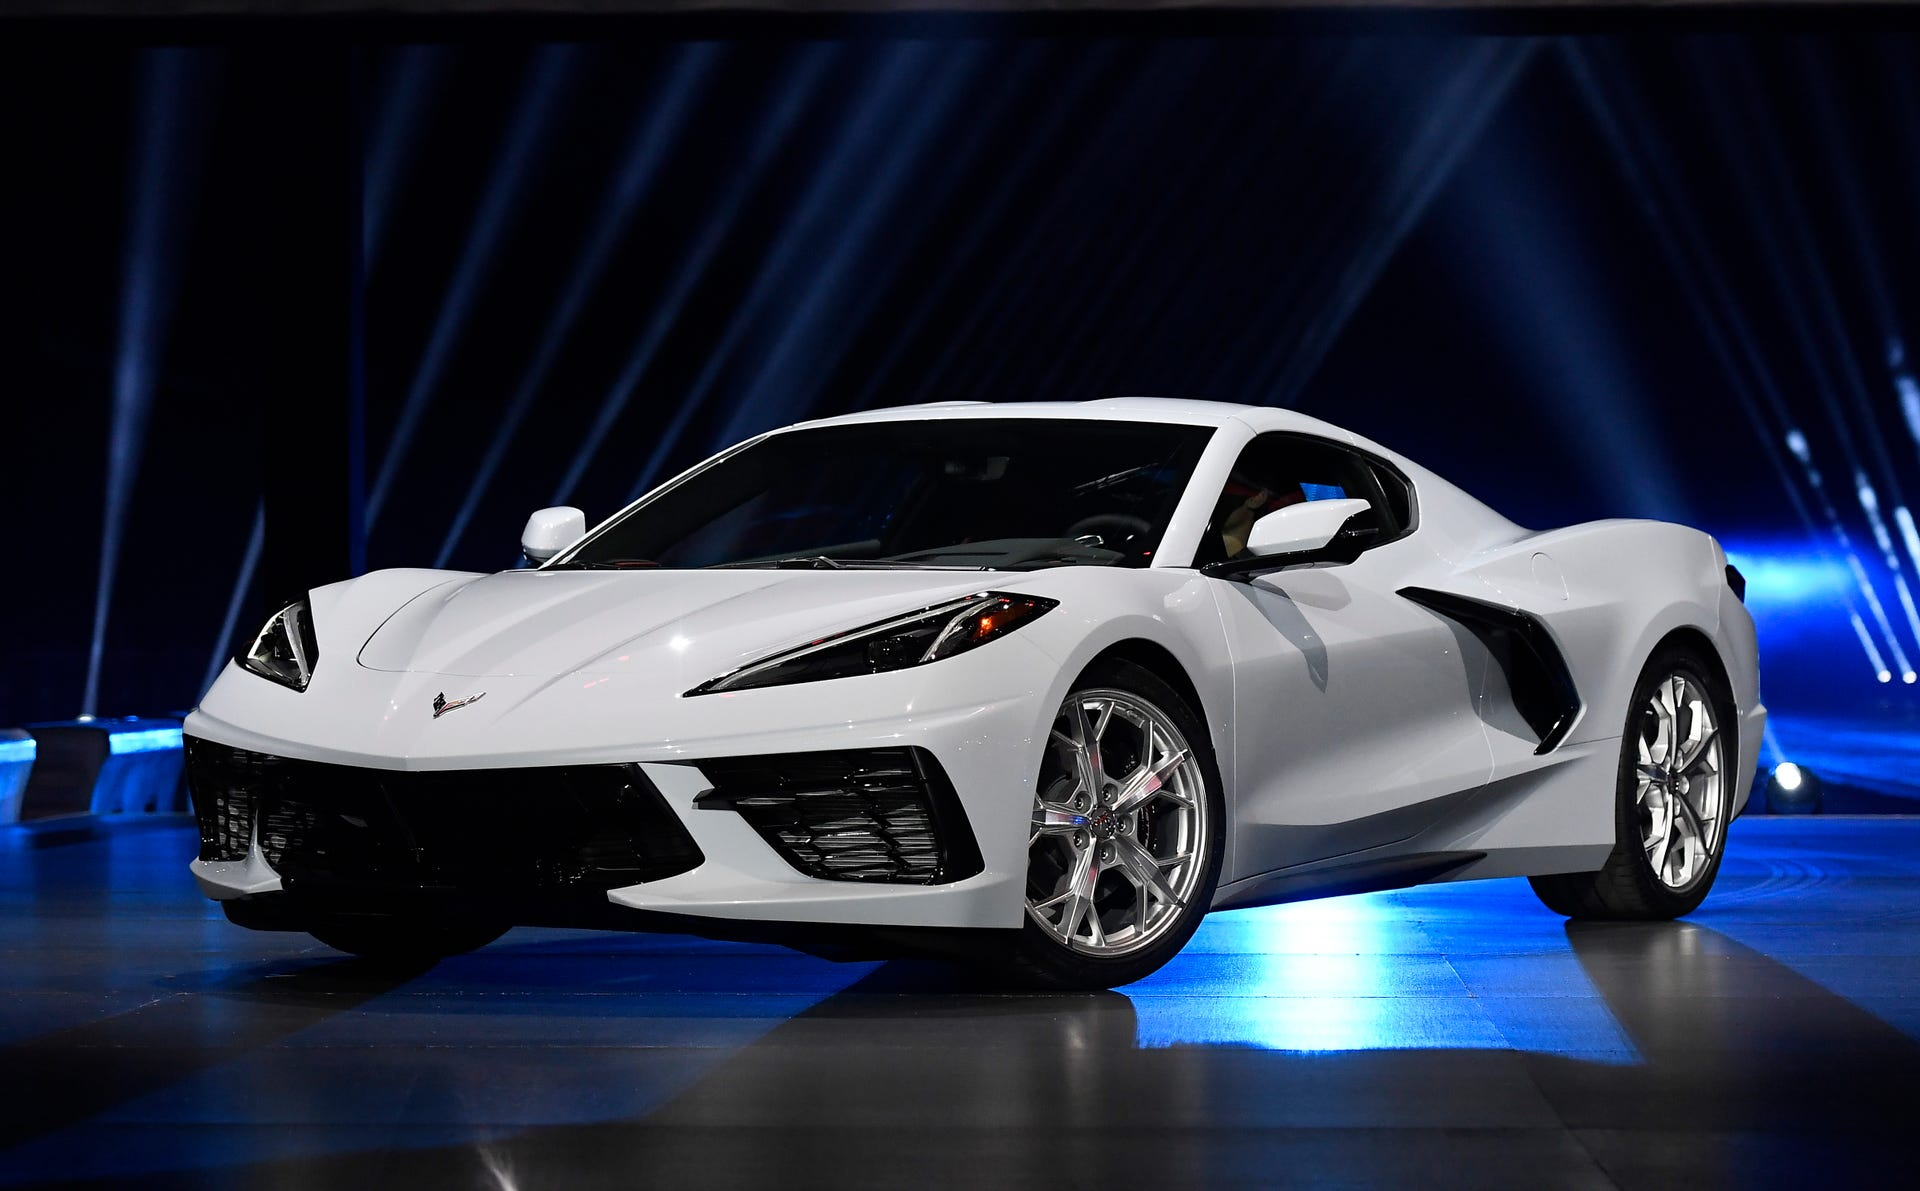 The 2020 mid-engine C8 Corvette Stingray by General Motors is unveiled during a news conference on July 18, 2019 in Tustin, California.